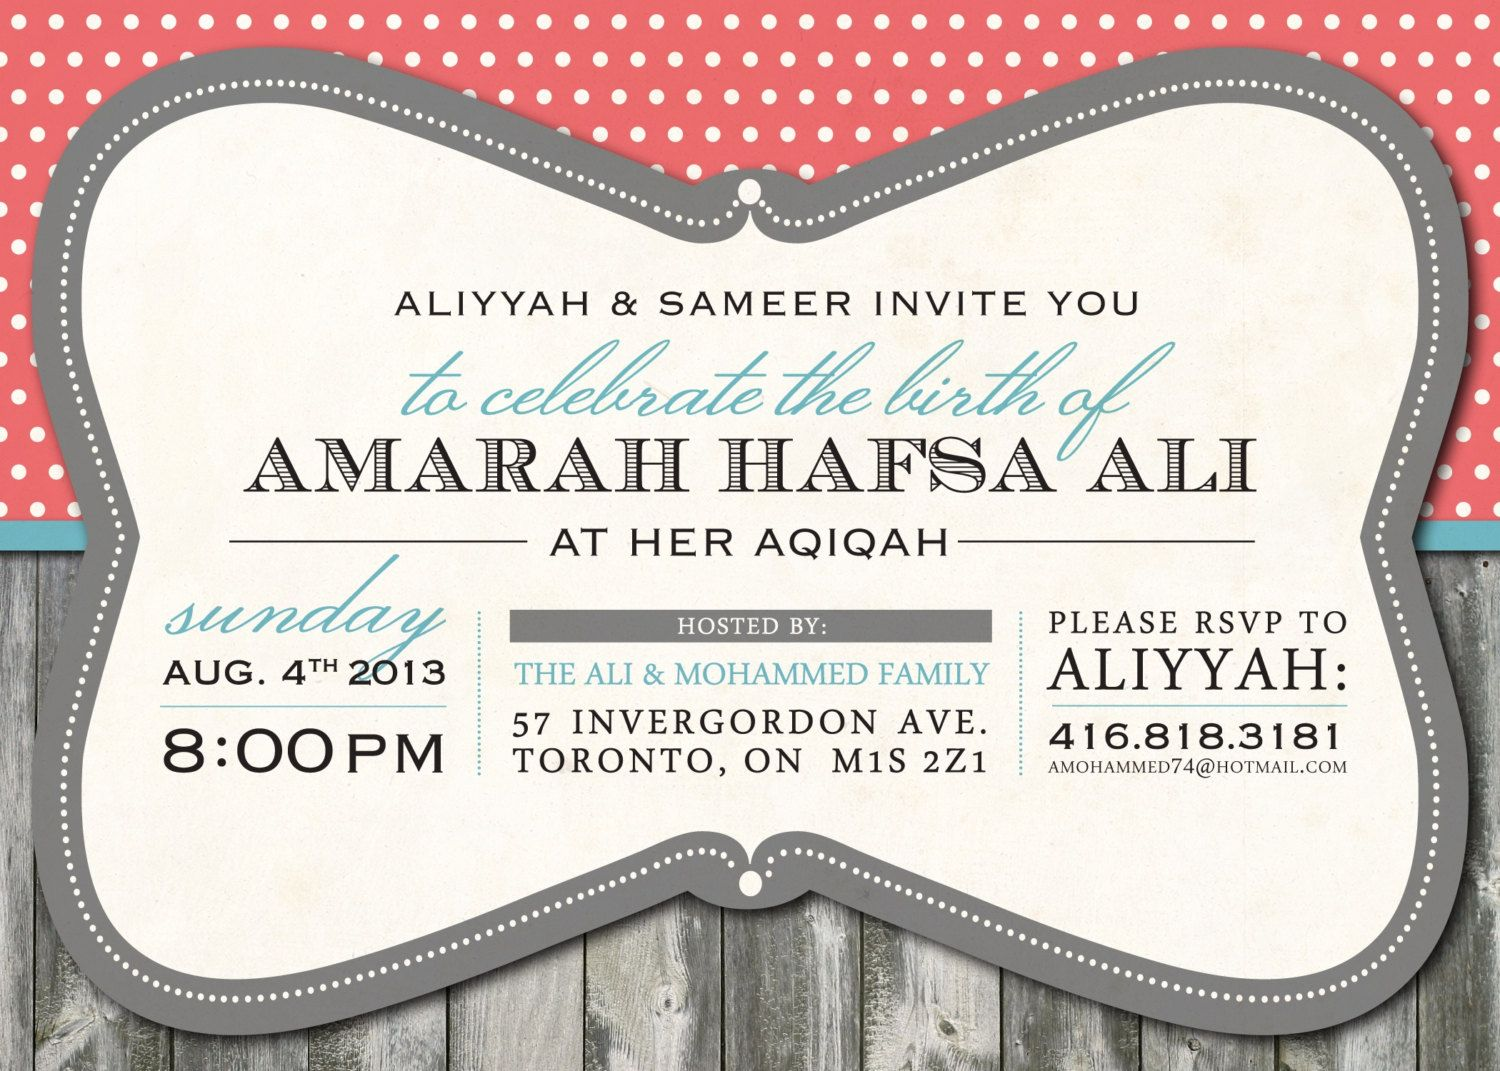 Aqiqahbaby invitation by doedesigners on etsy 2090 aqiqah aqiqahbaby invitation by doedesigners on etsy 2090 stopboris Image collections